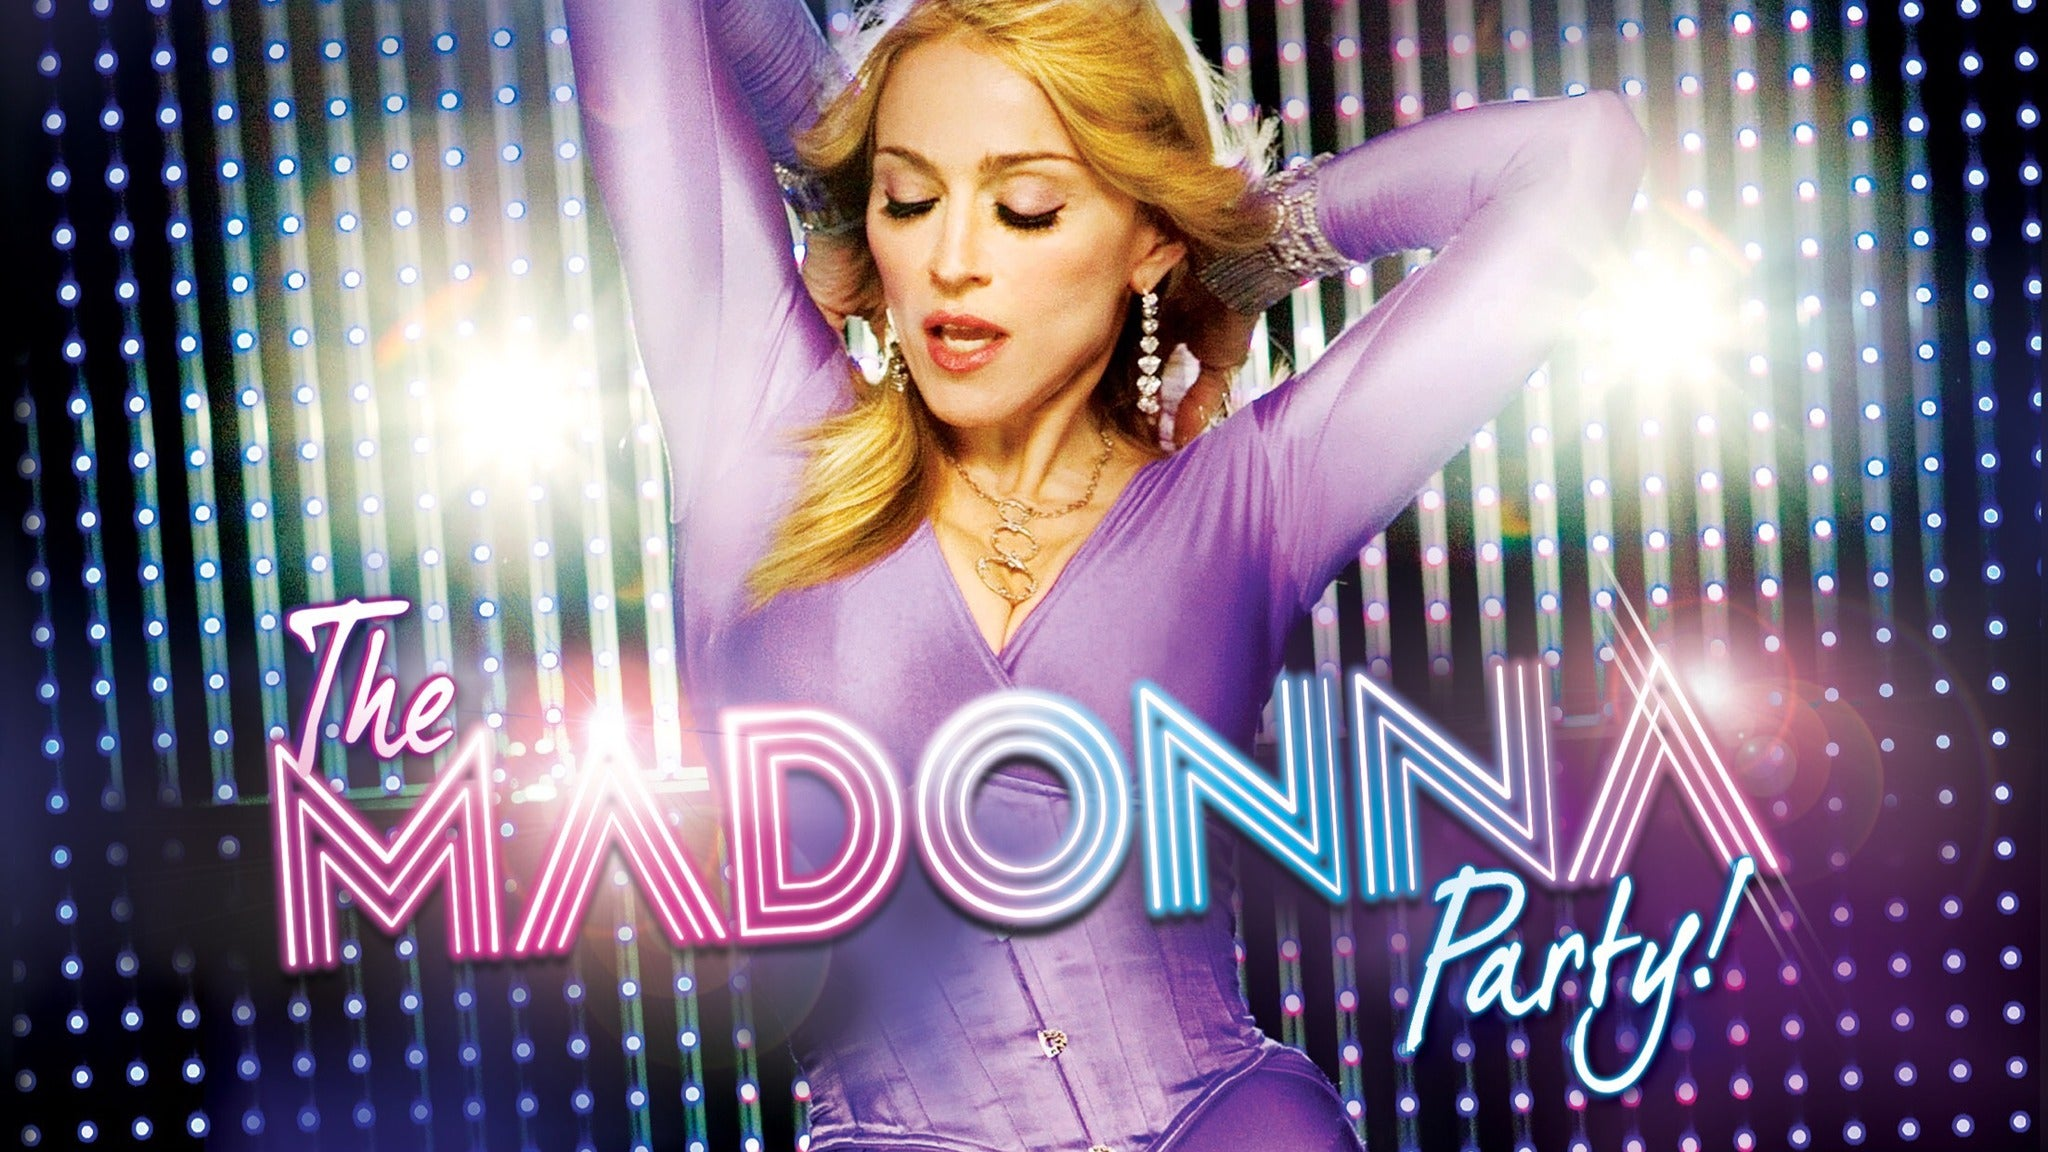 The Videodrome Discotheque MADONNA Party